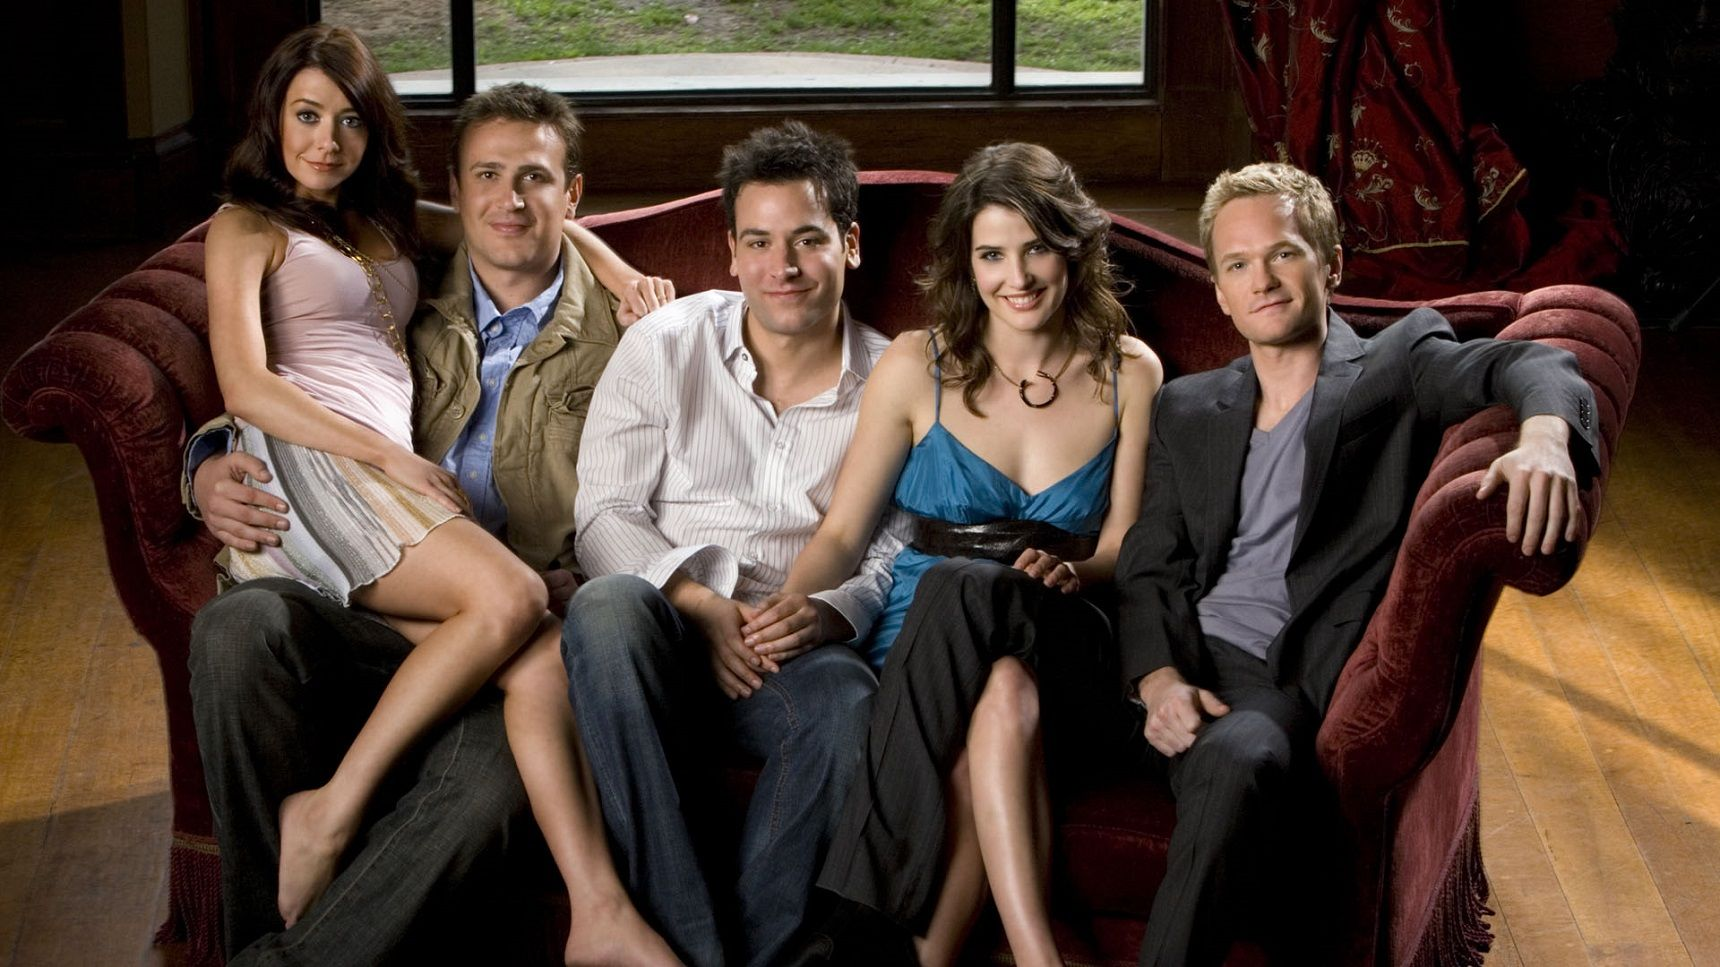 20 Fun Facts About How I Met Your Mother